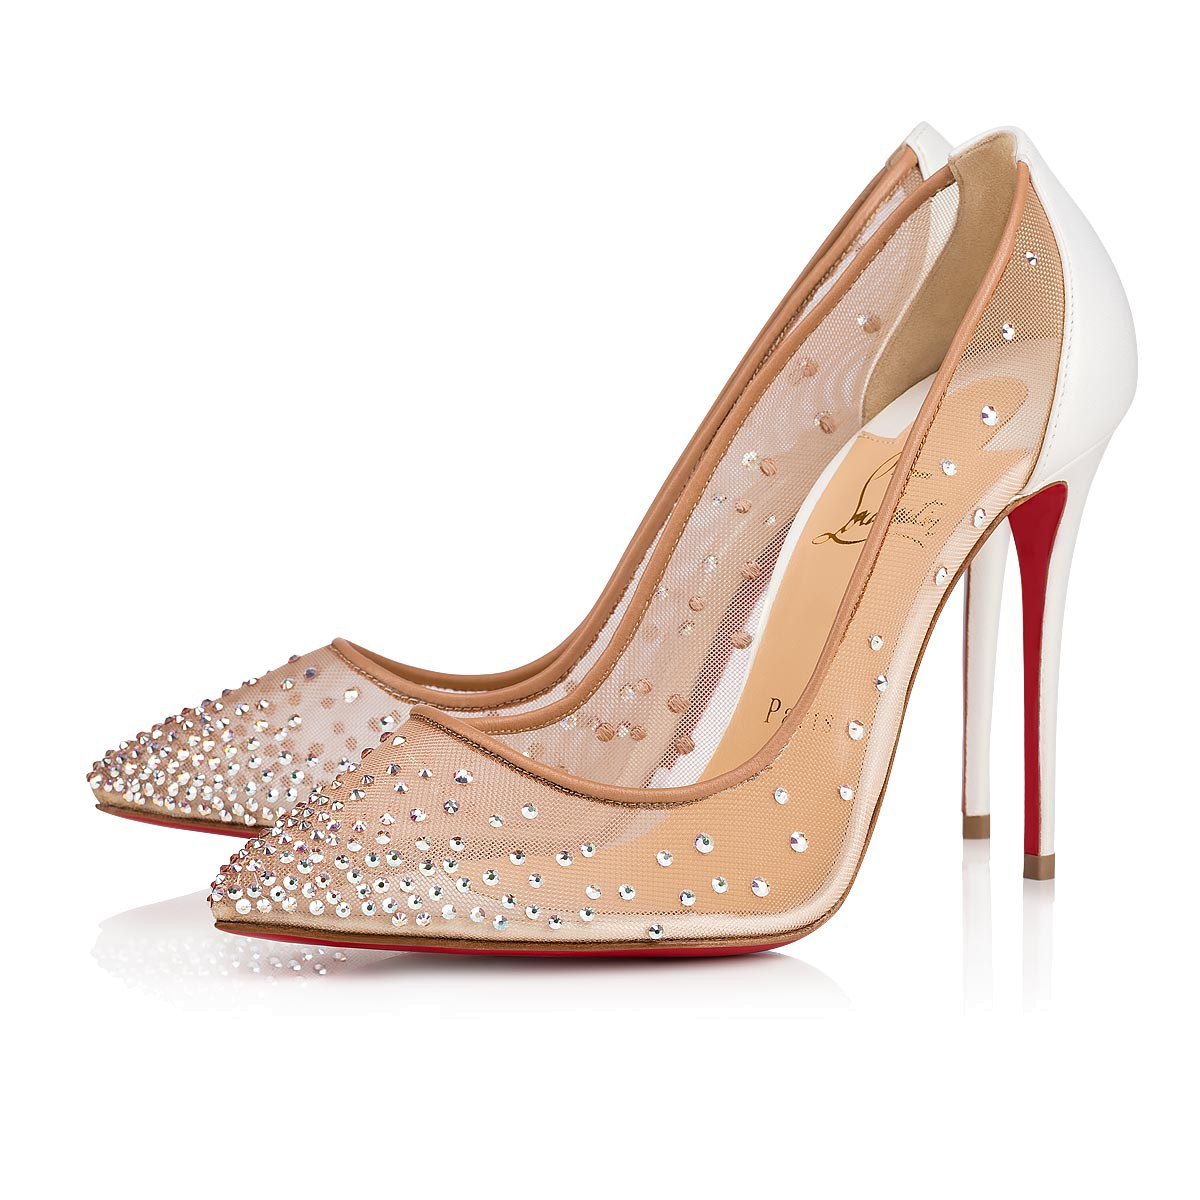 hot sale online fecda 7bb59 Follies Strass 100 Version Snow Strass - Women Shoes - Christian Louboutin